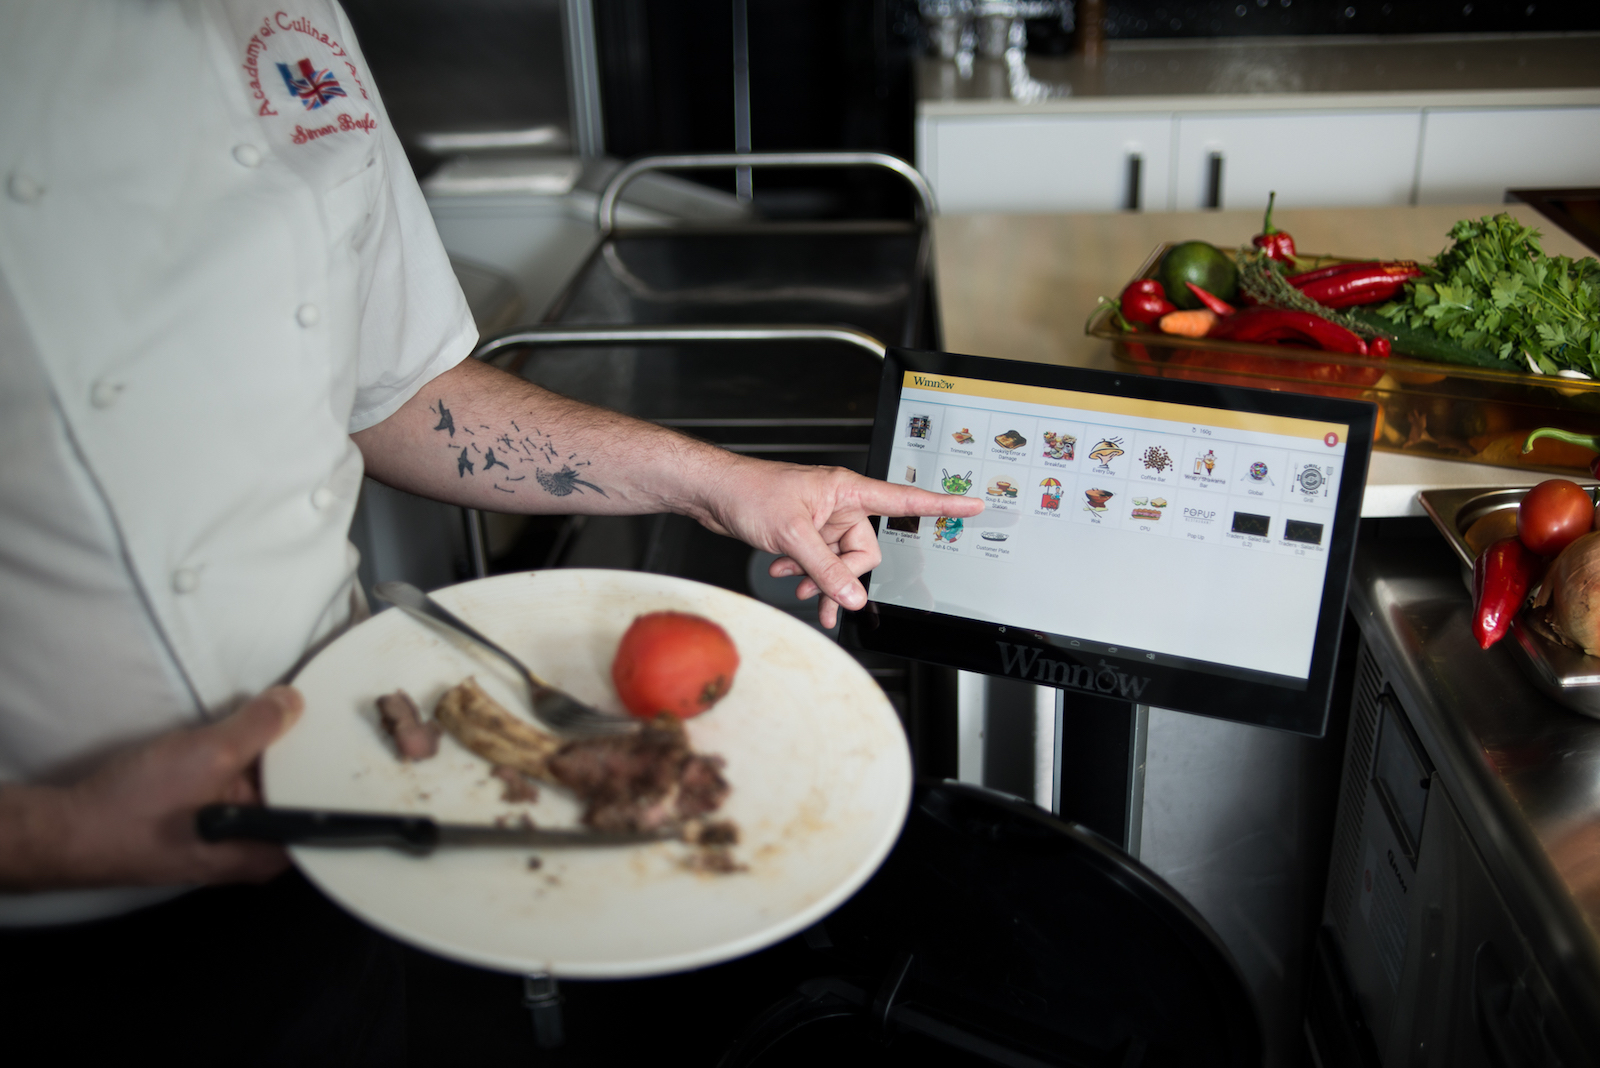 Winnow's smart kitchen scale logs waste and sends recommendations on how management might reduce food waste.